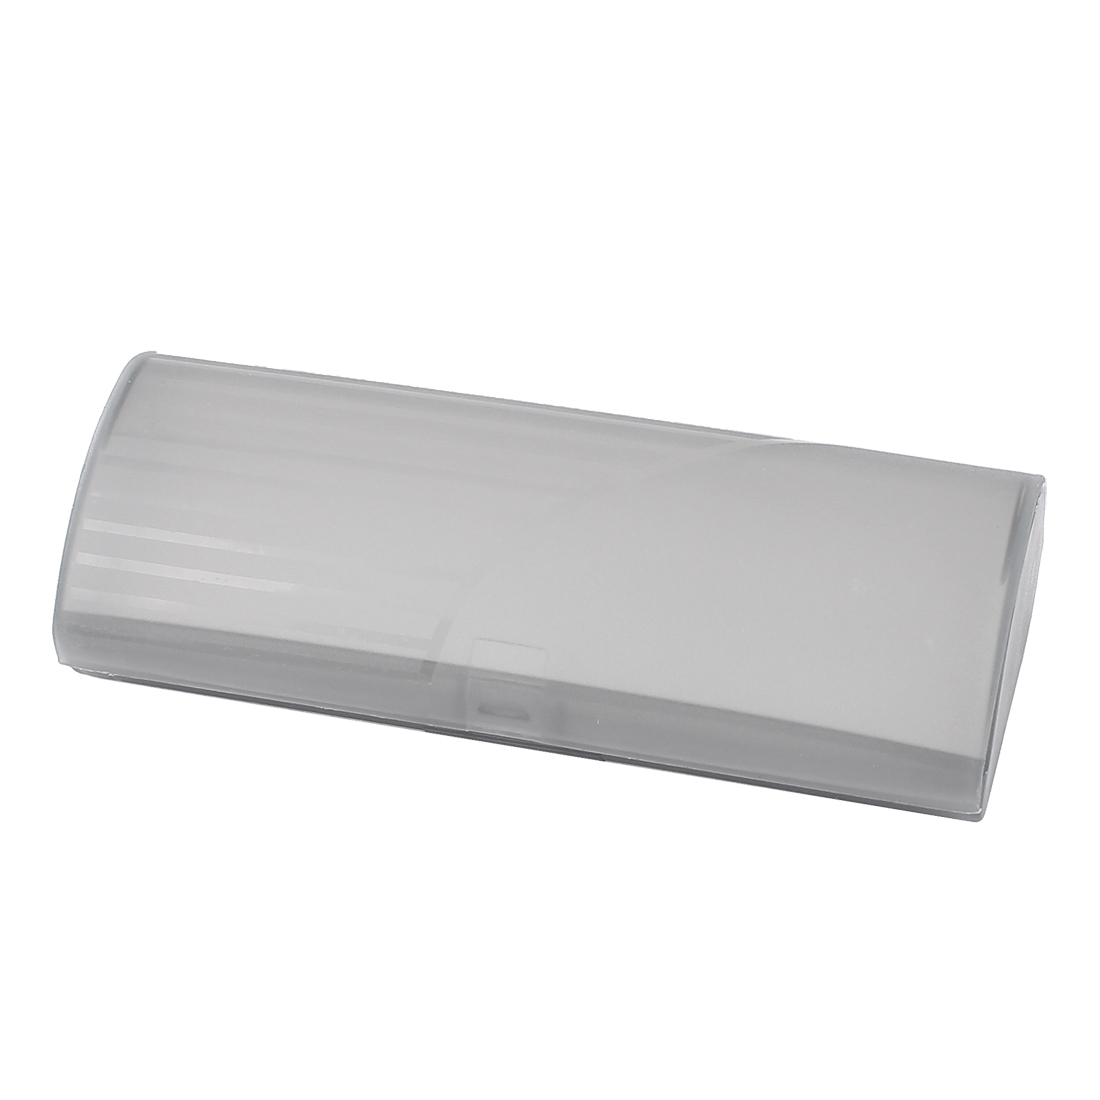 Press Clousre Plastic Rectangular Eyeglasses Case Holder Box Gray